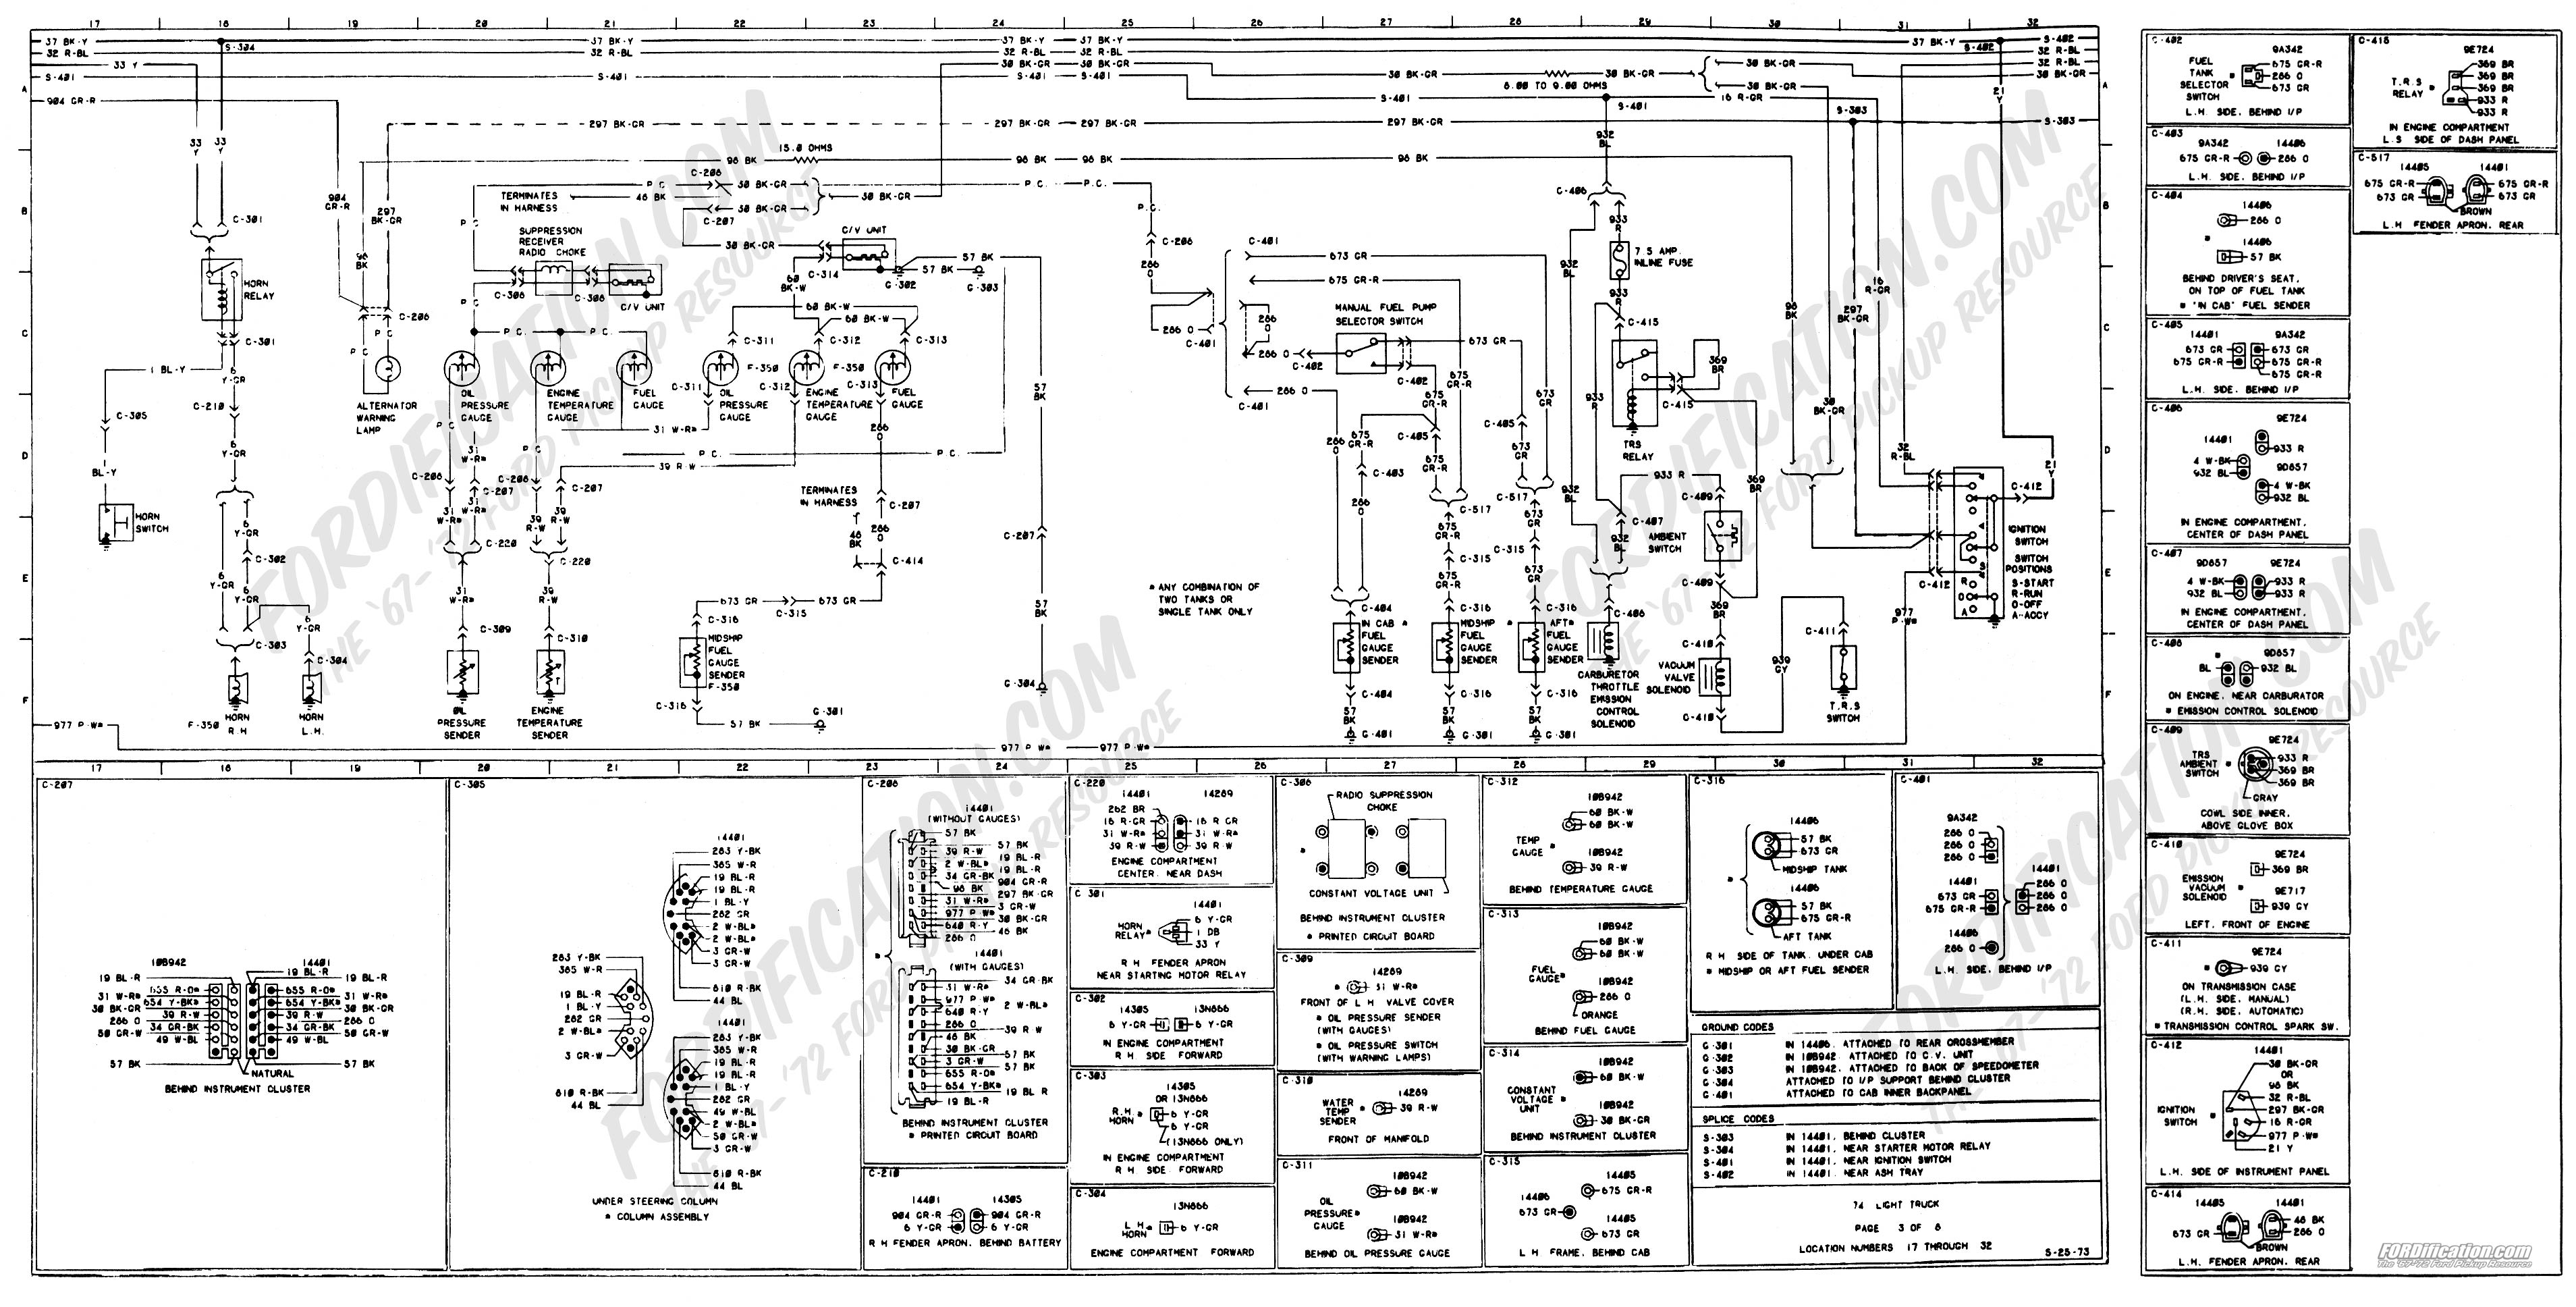 wiring_74master_3of8 1973 1979 ford truck wiring diagrams & schematics fordification net 1973 ford f100 wiring diagram at bayanpartner.co